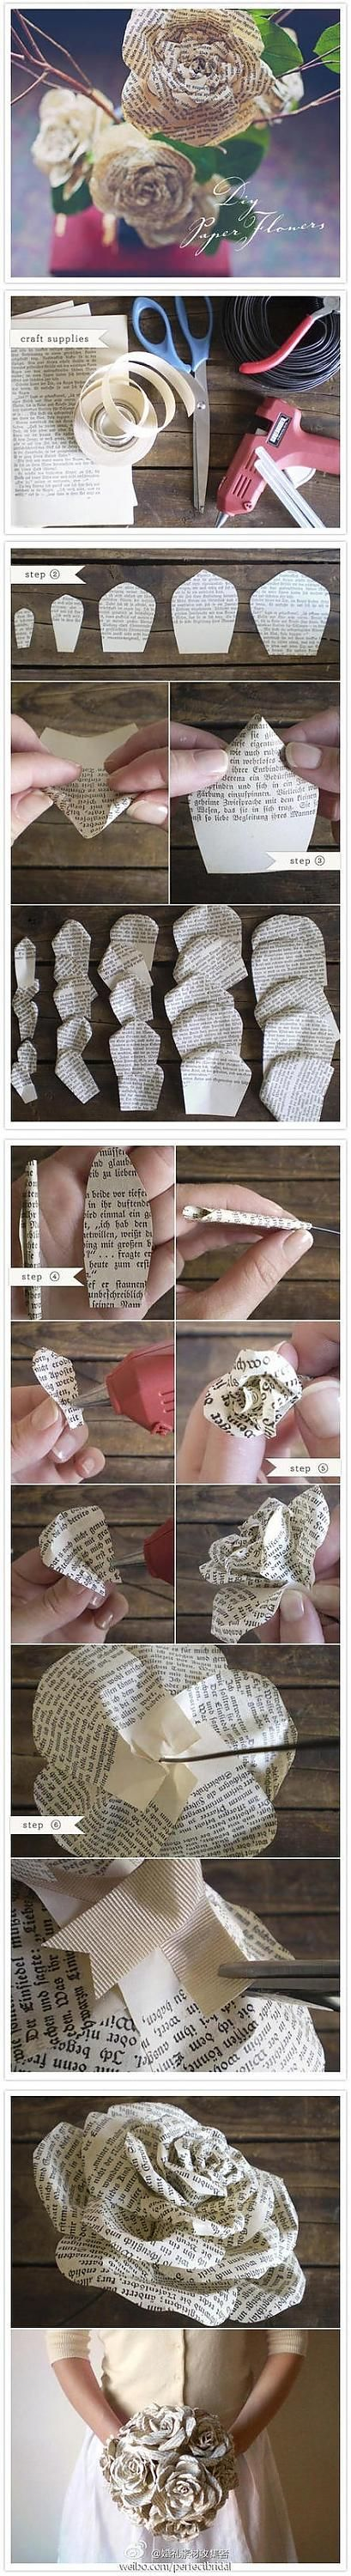 Diy7 #bookspapersandthings